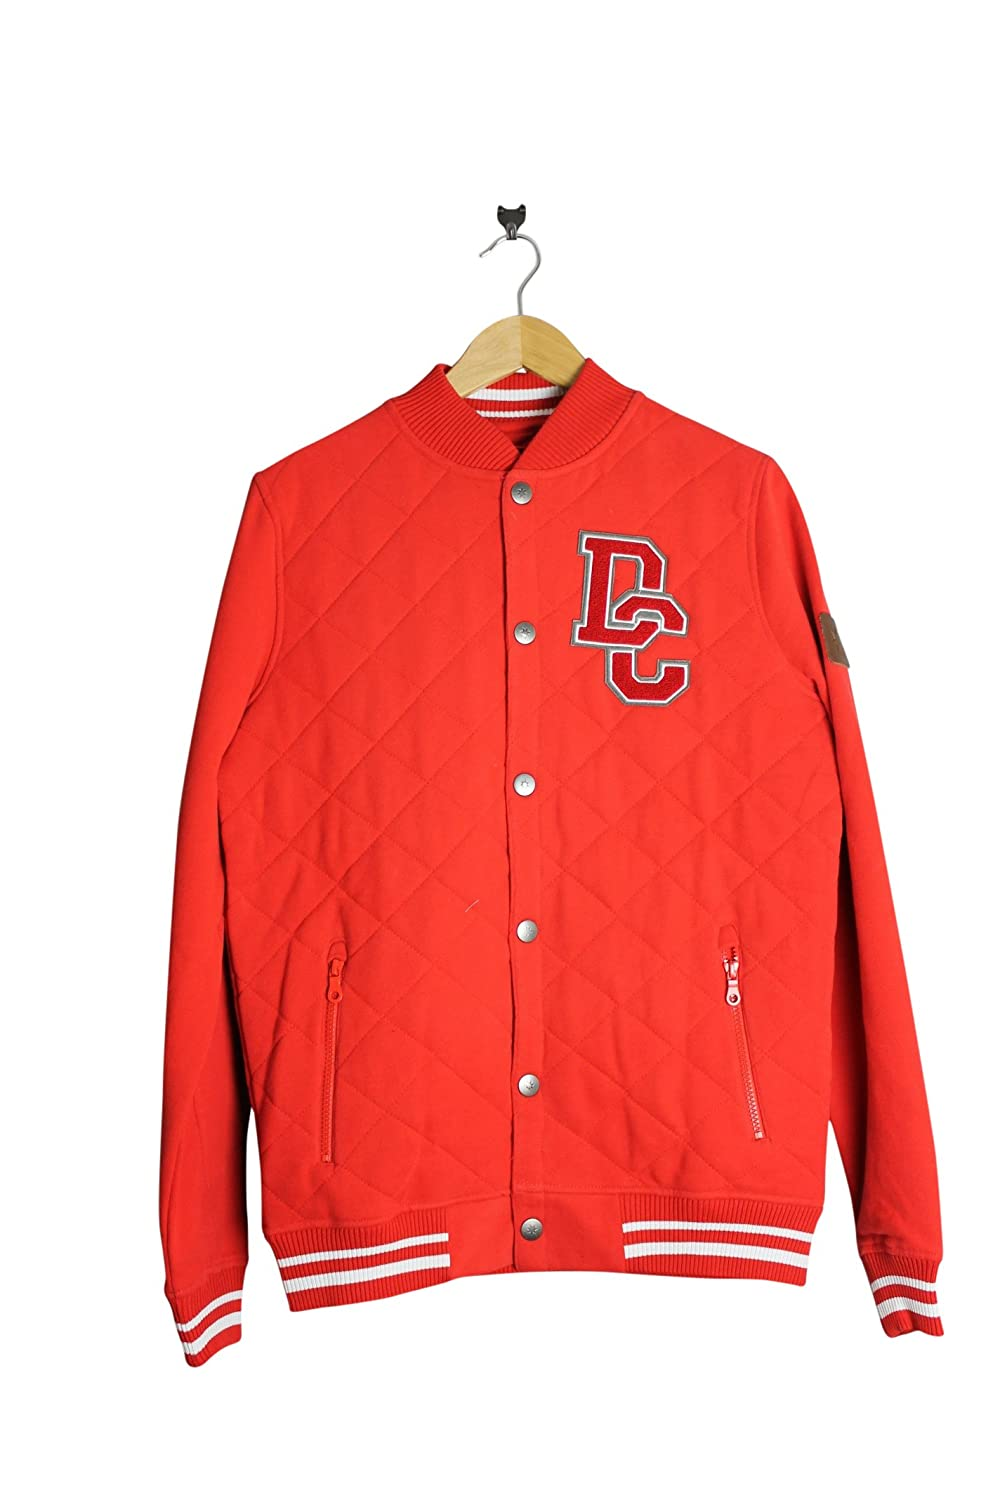 DC Shoes Clothing DPMSW032 Mens Red 100% Cotton Button Down Base Ball Jacket